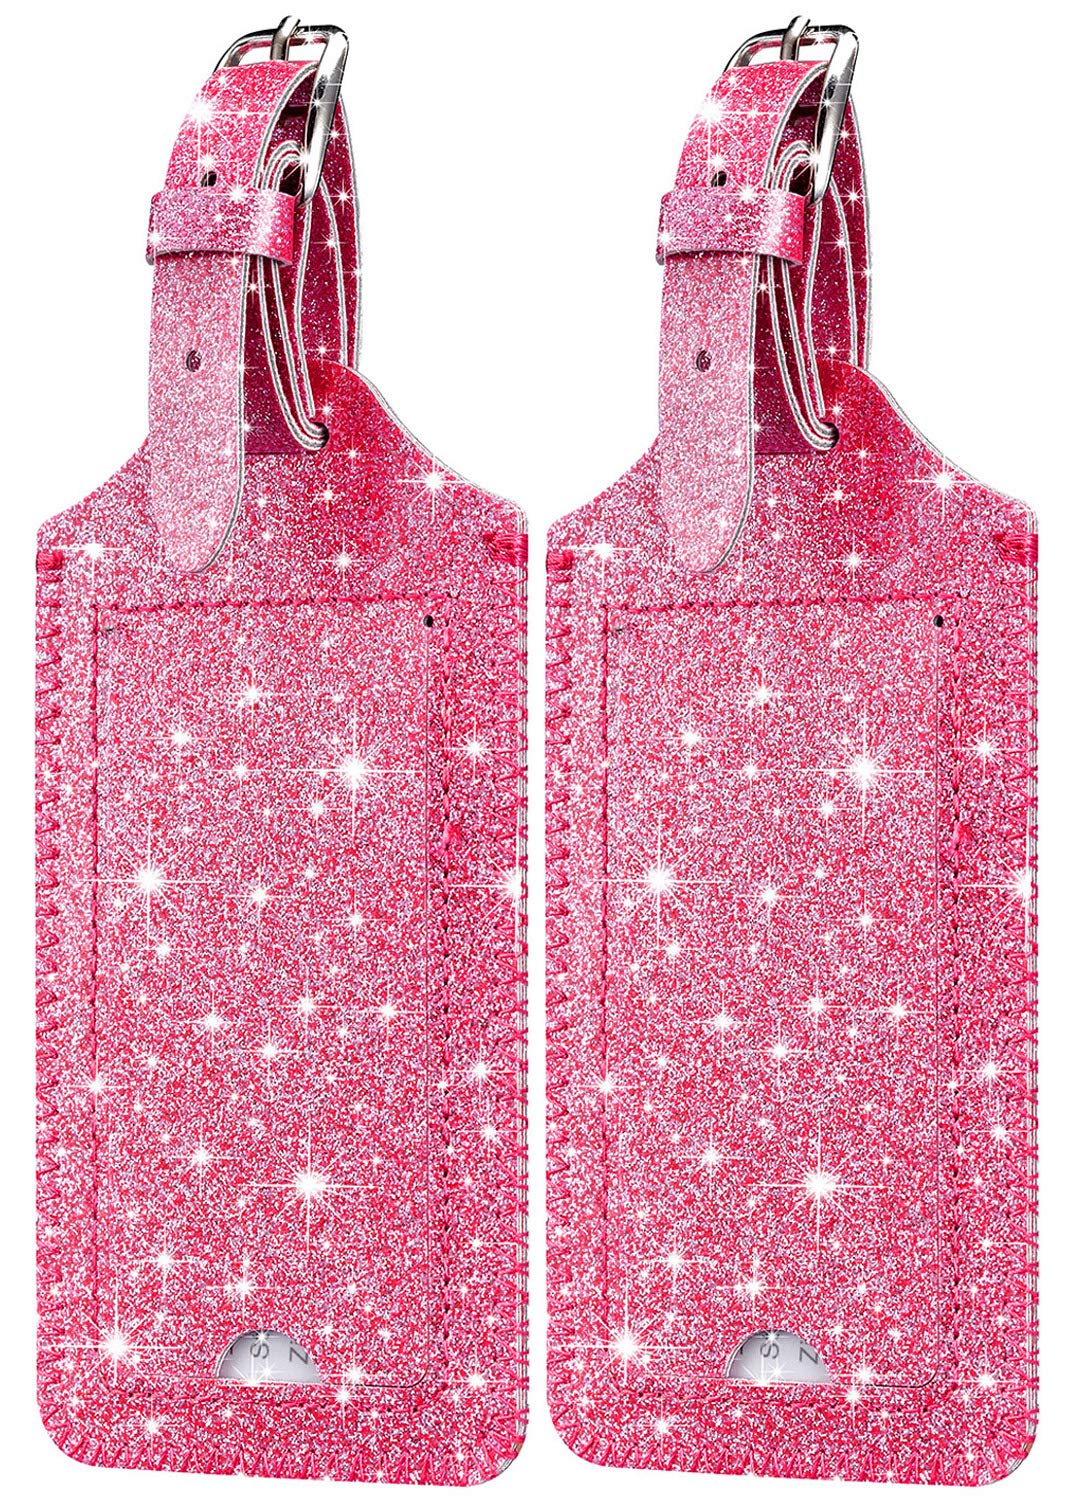 [2 Pack] Luggage Tags - HOTCOOL Leather Luggage Tags Travel Bag Tags, Glitter Pink by HOTCOOL